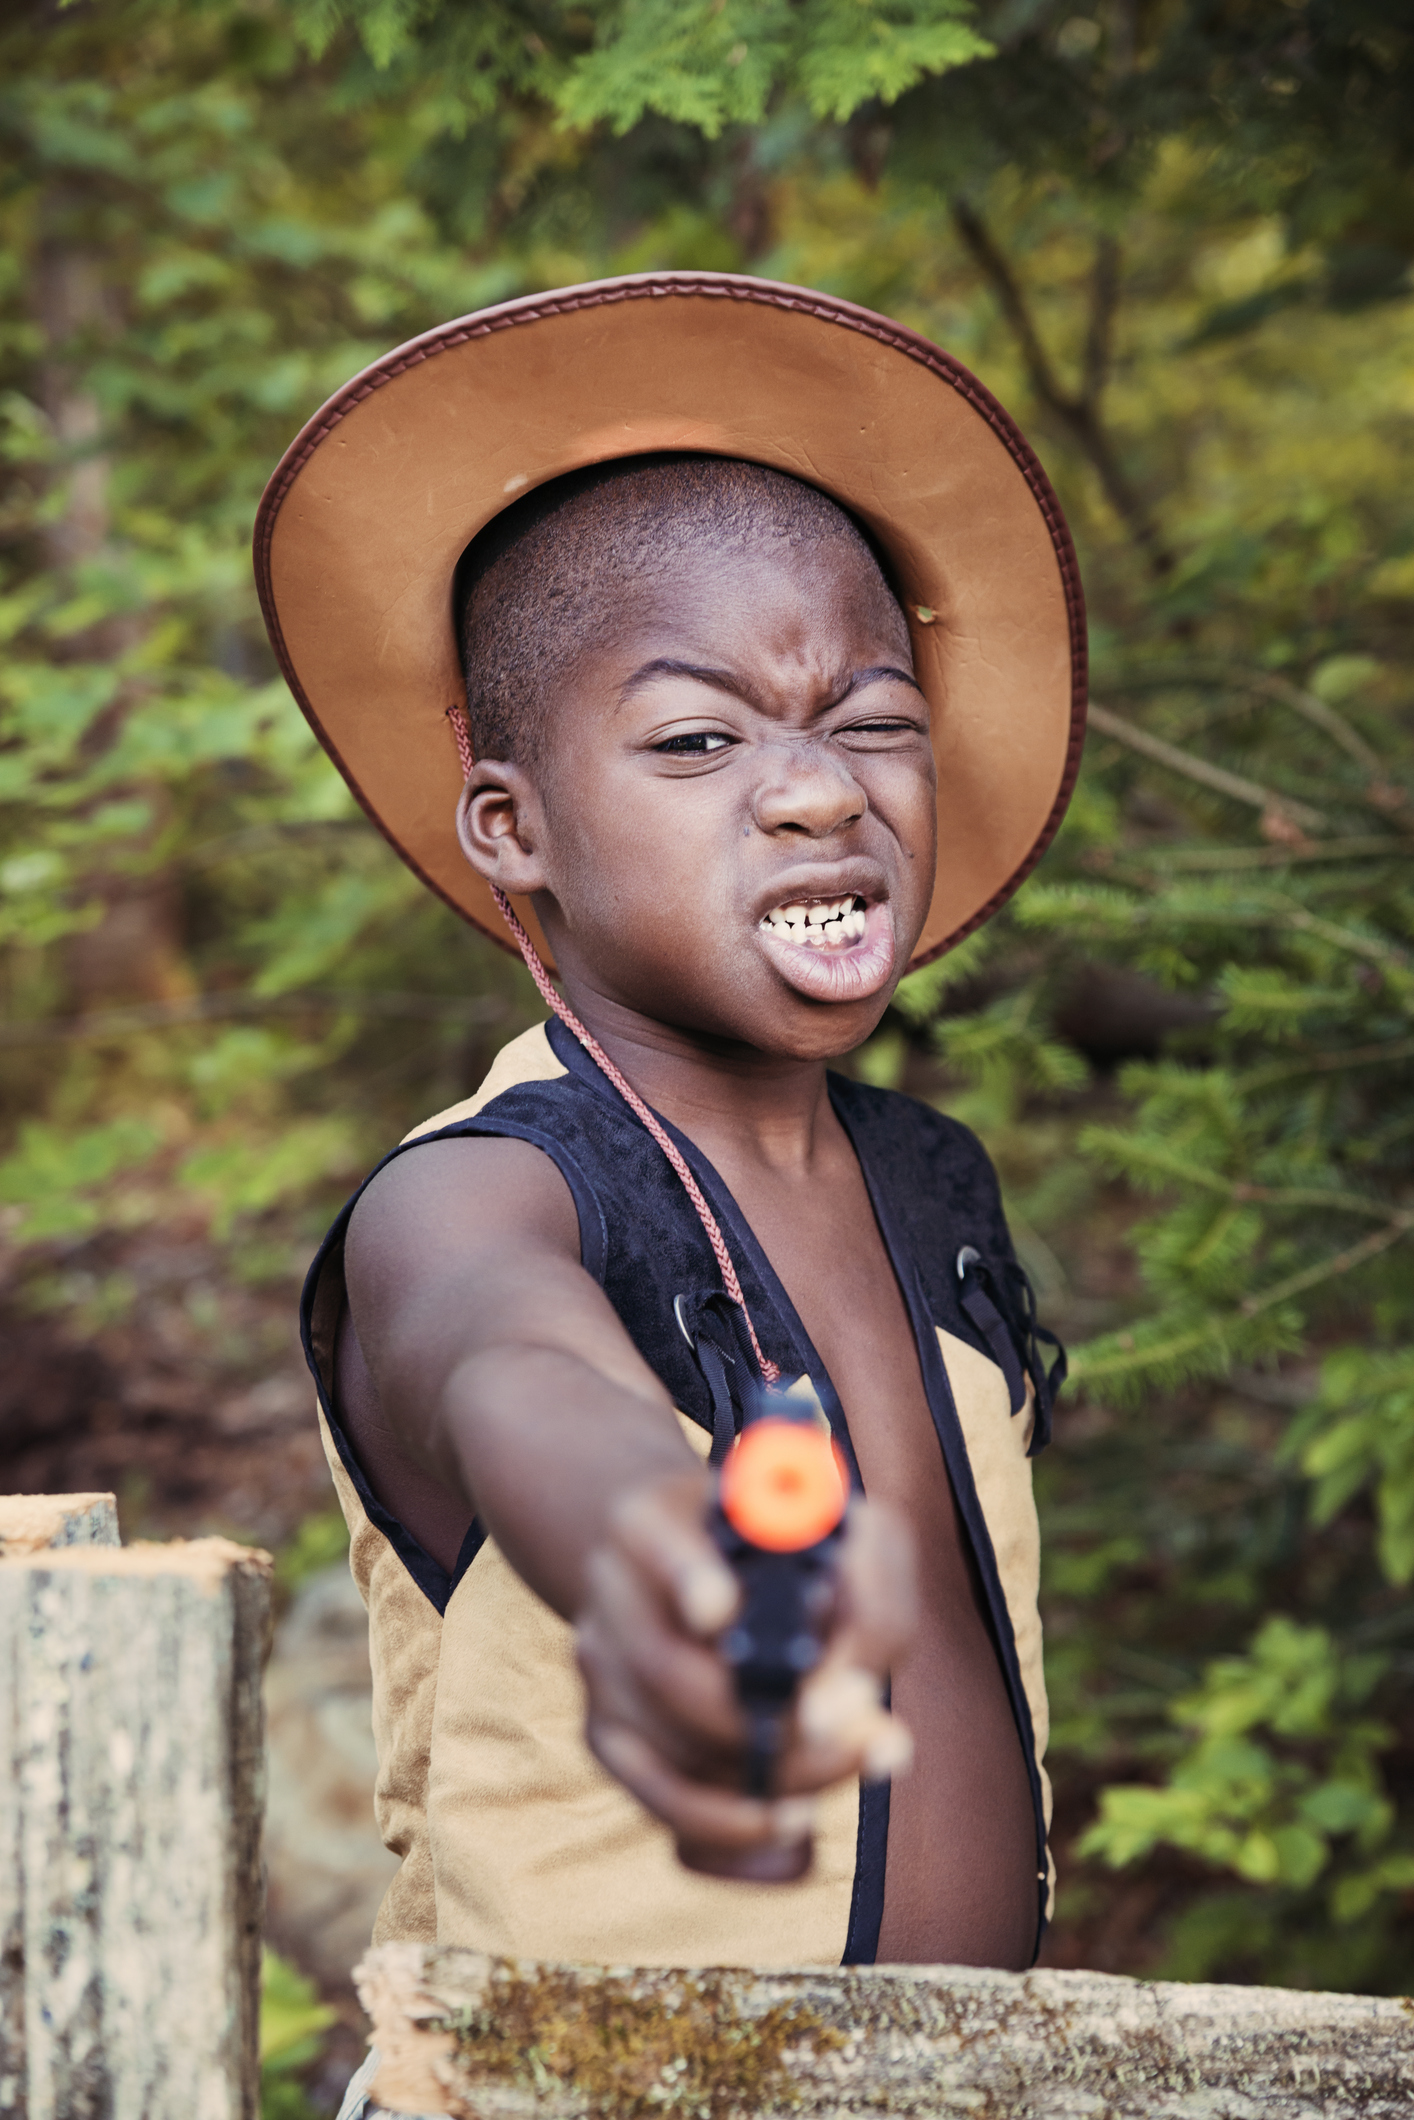 Little black boy playing cowboy with a toy gun.